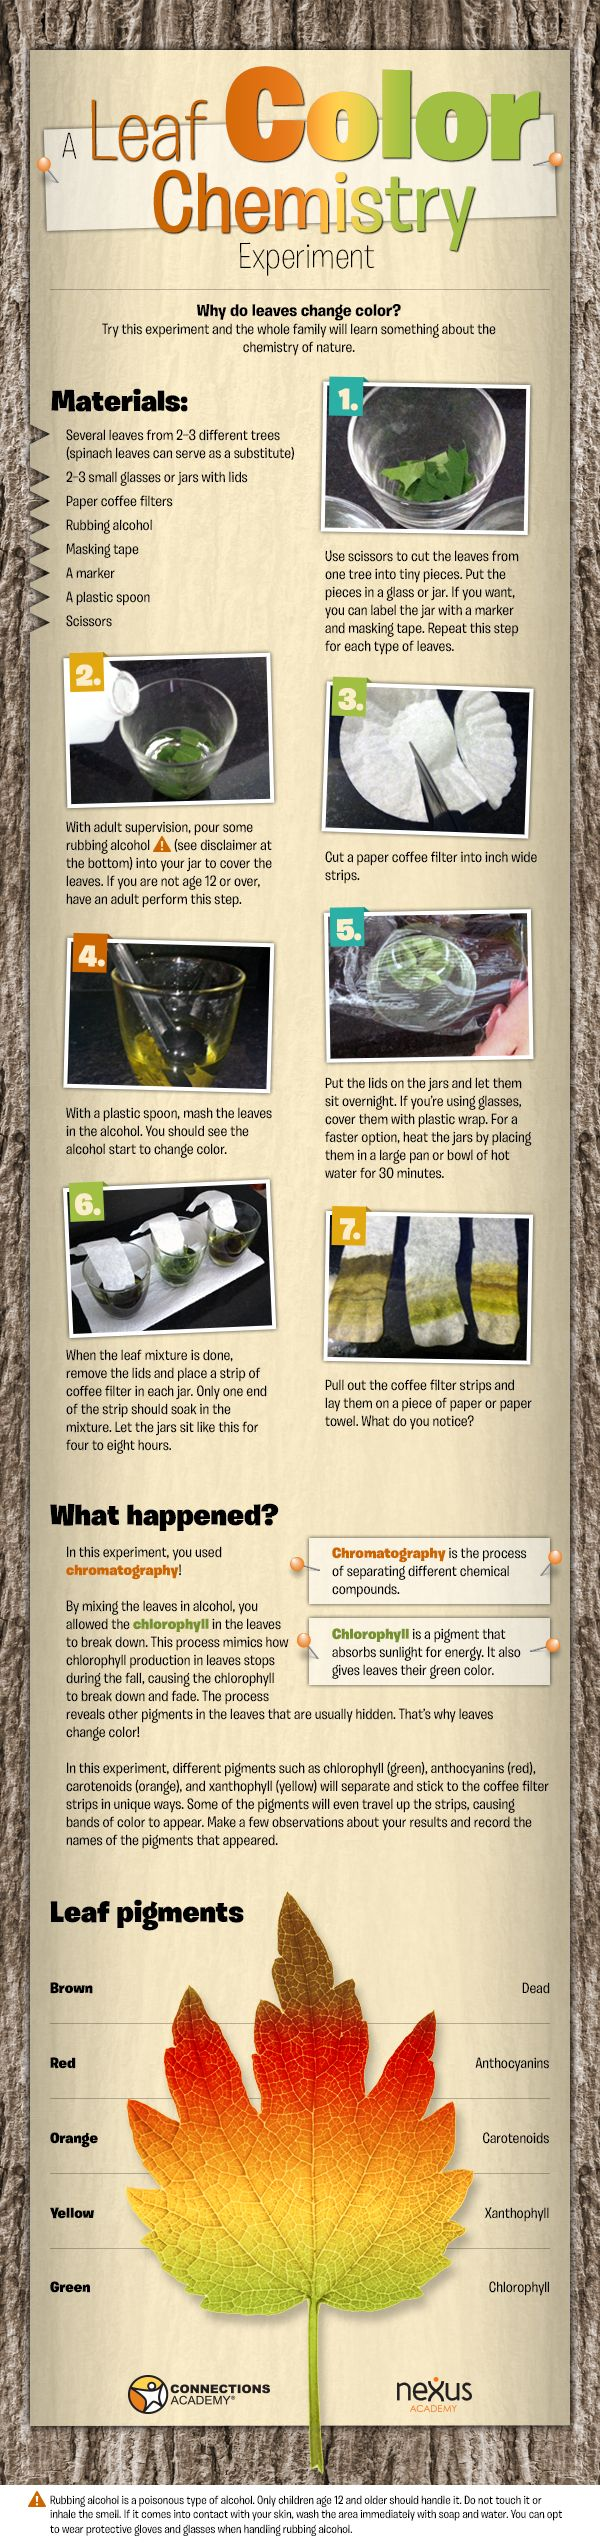 25+ best ideas about Chemistry experiments for kids on Pinterest ...